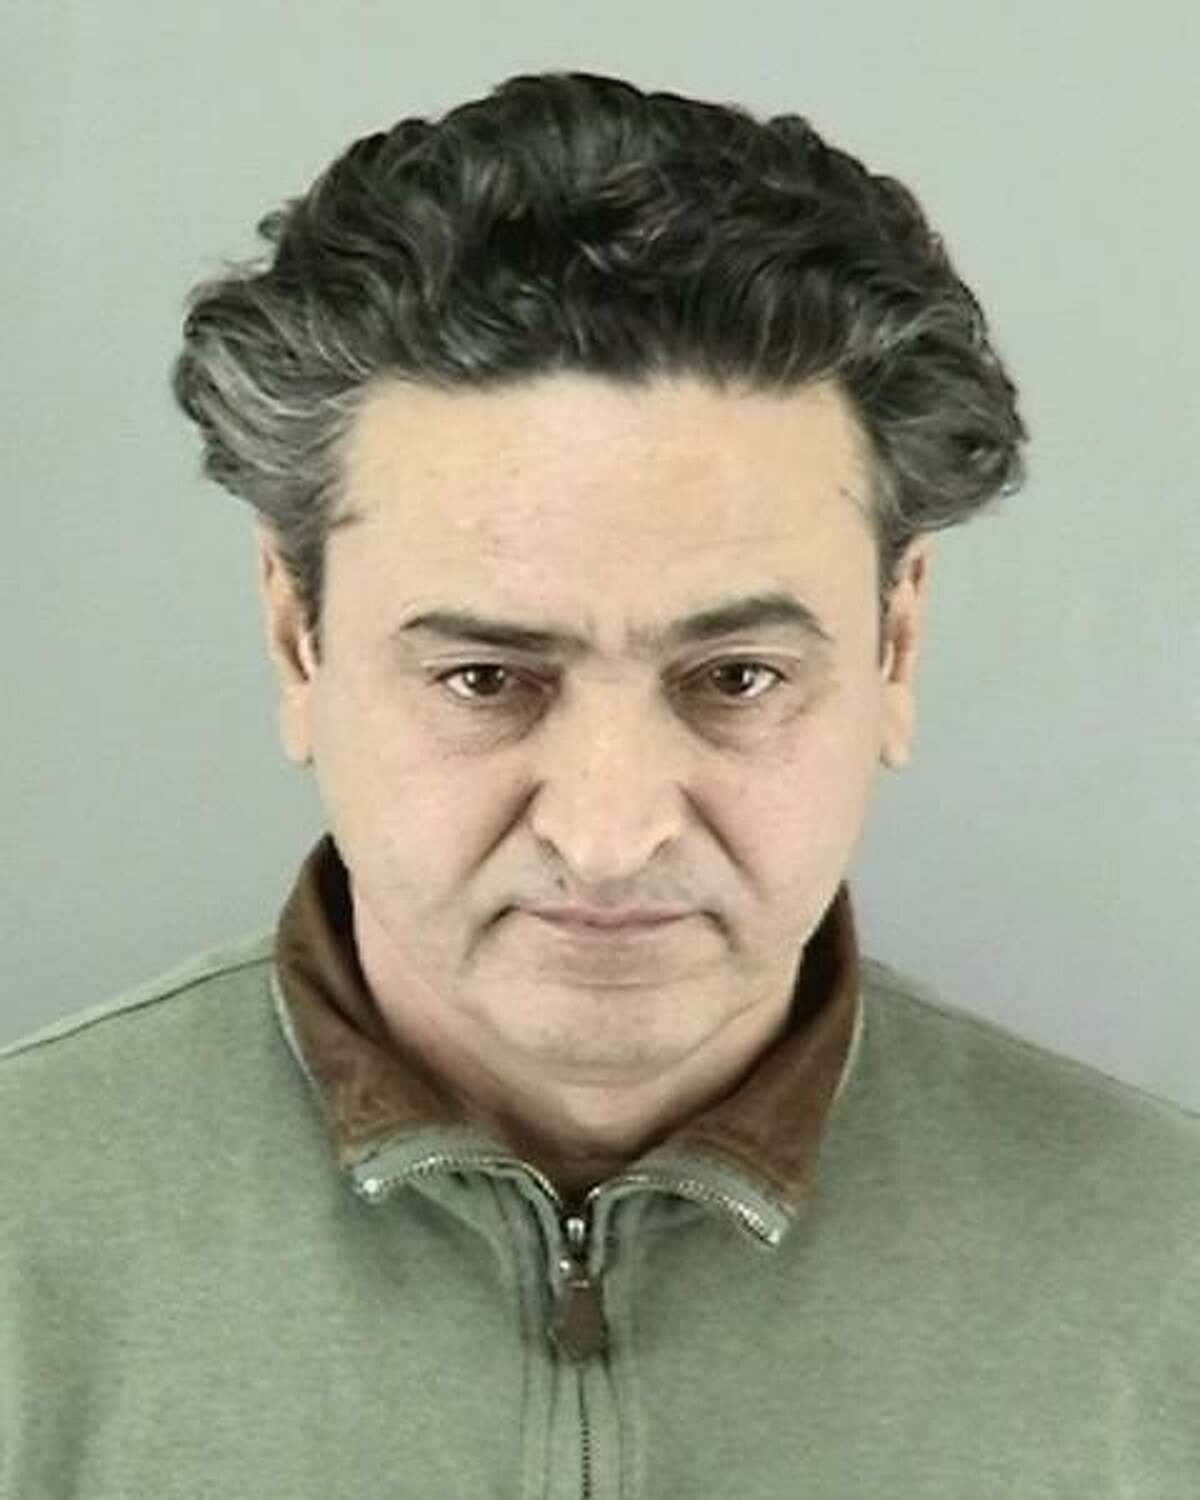 Syed Muzzafar, 57, of Union City, arrested for alleged vehicular manslaughter in connection with a crash Dec. 31, 2013, that killed a 6-year-old pedestrian, Sophia Lu, at Polk and Ellis streets in San Francisco.